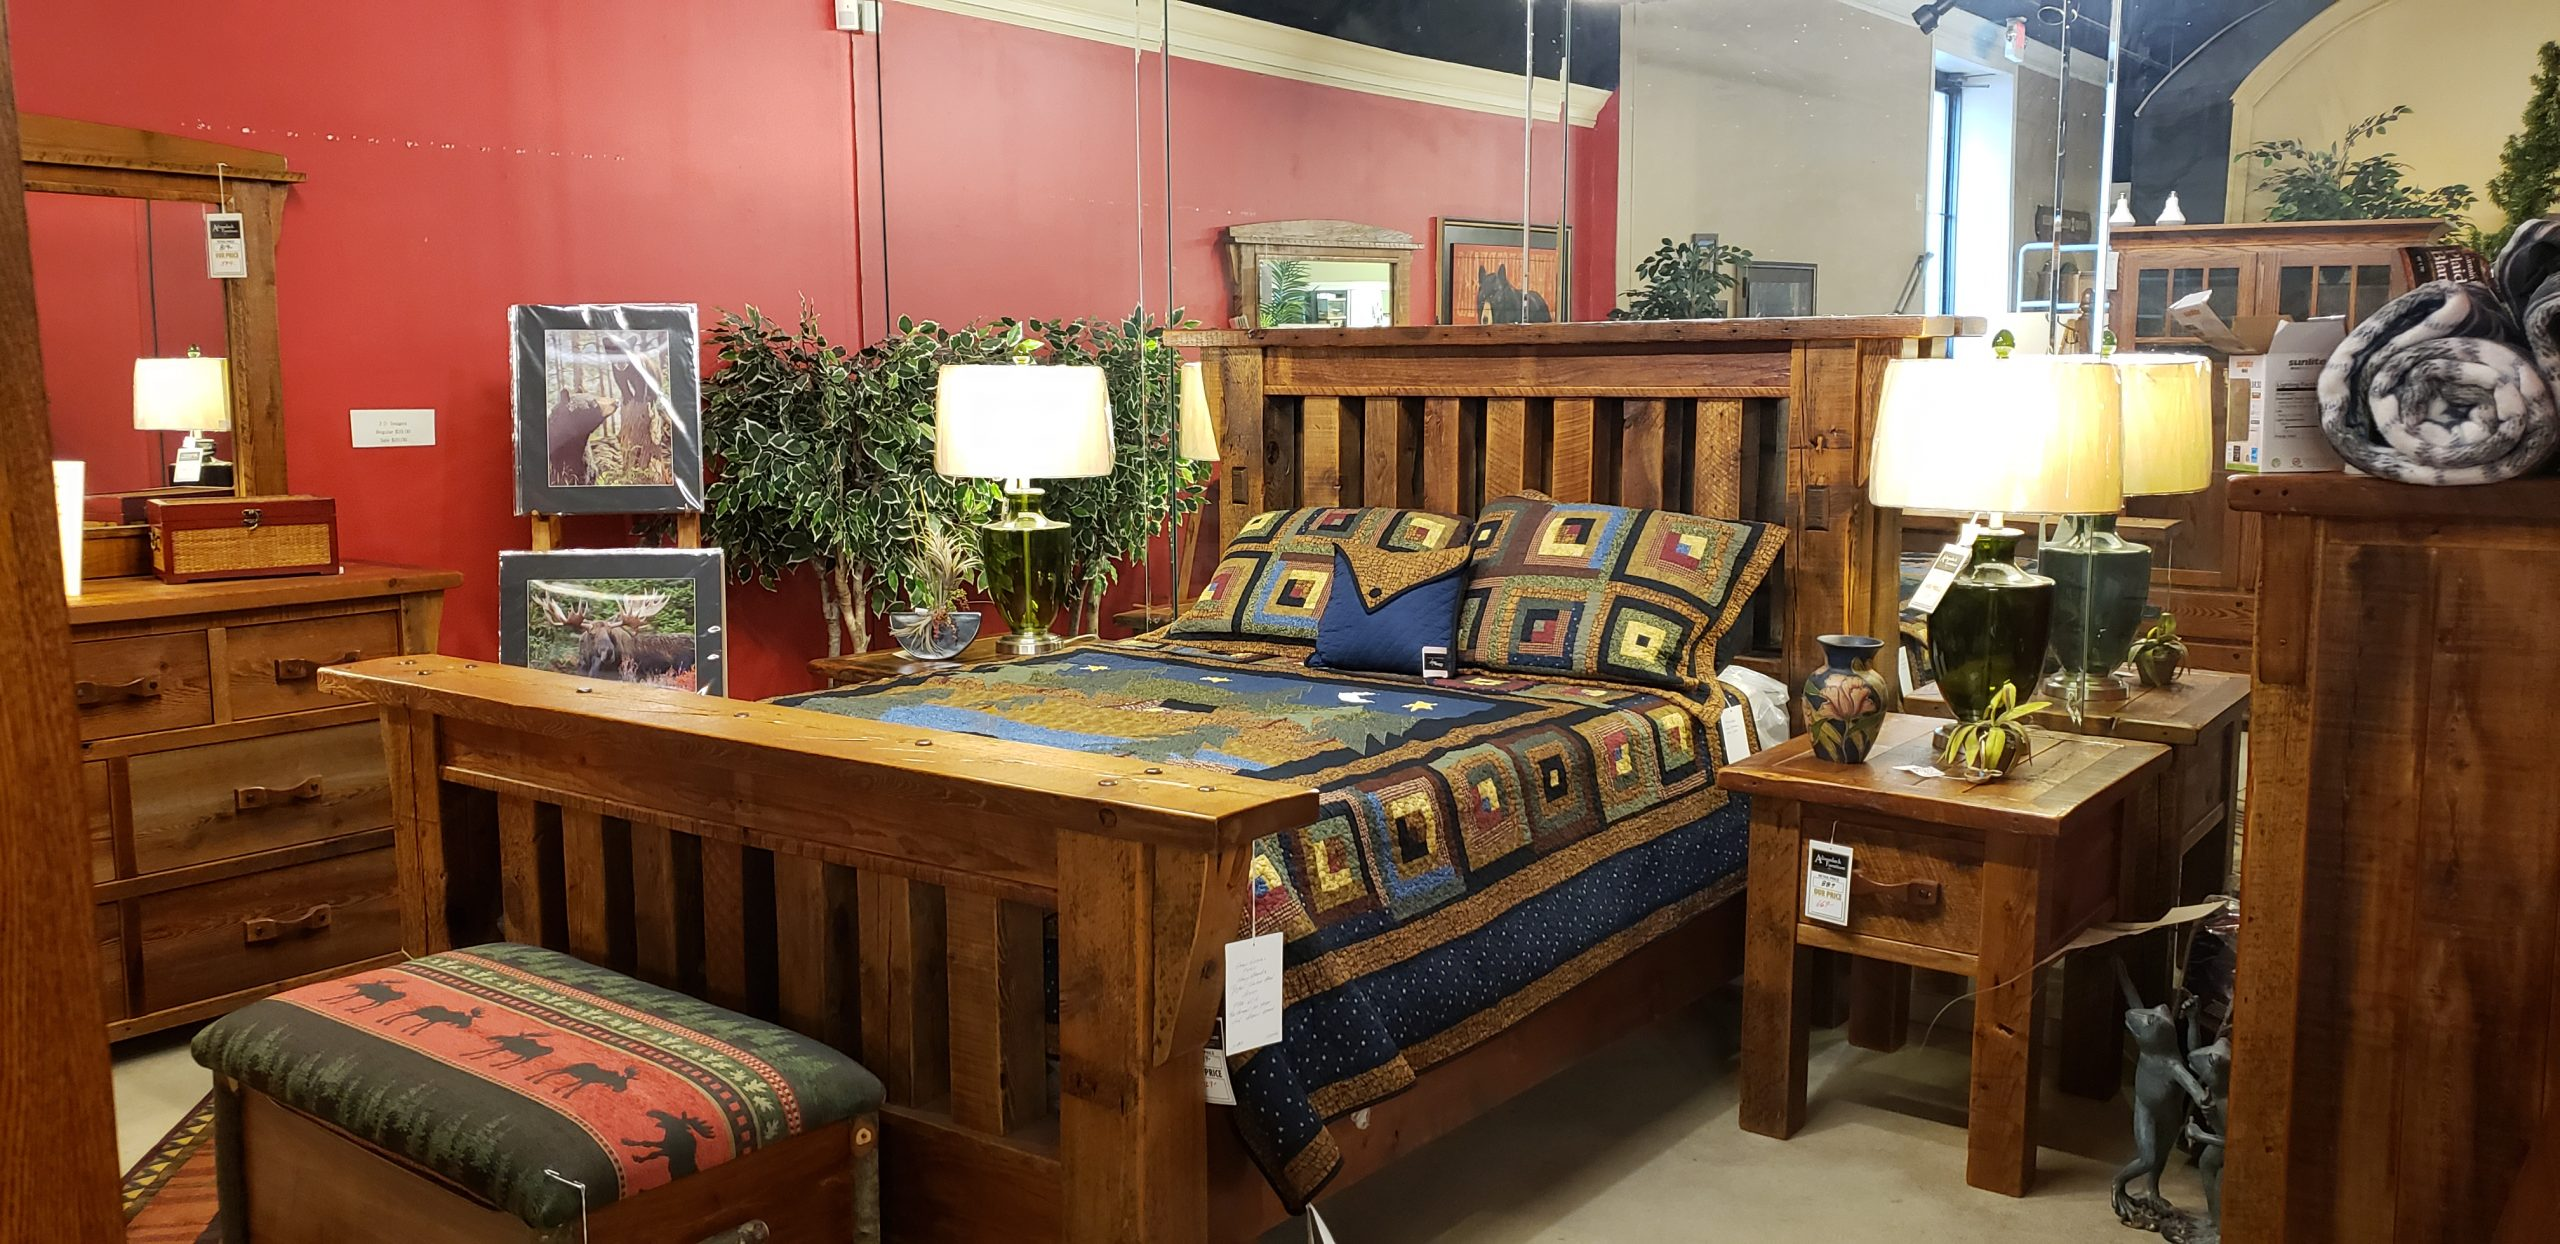 Welcome To Adirondack Furniture Adirondack Furniture